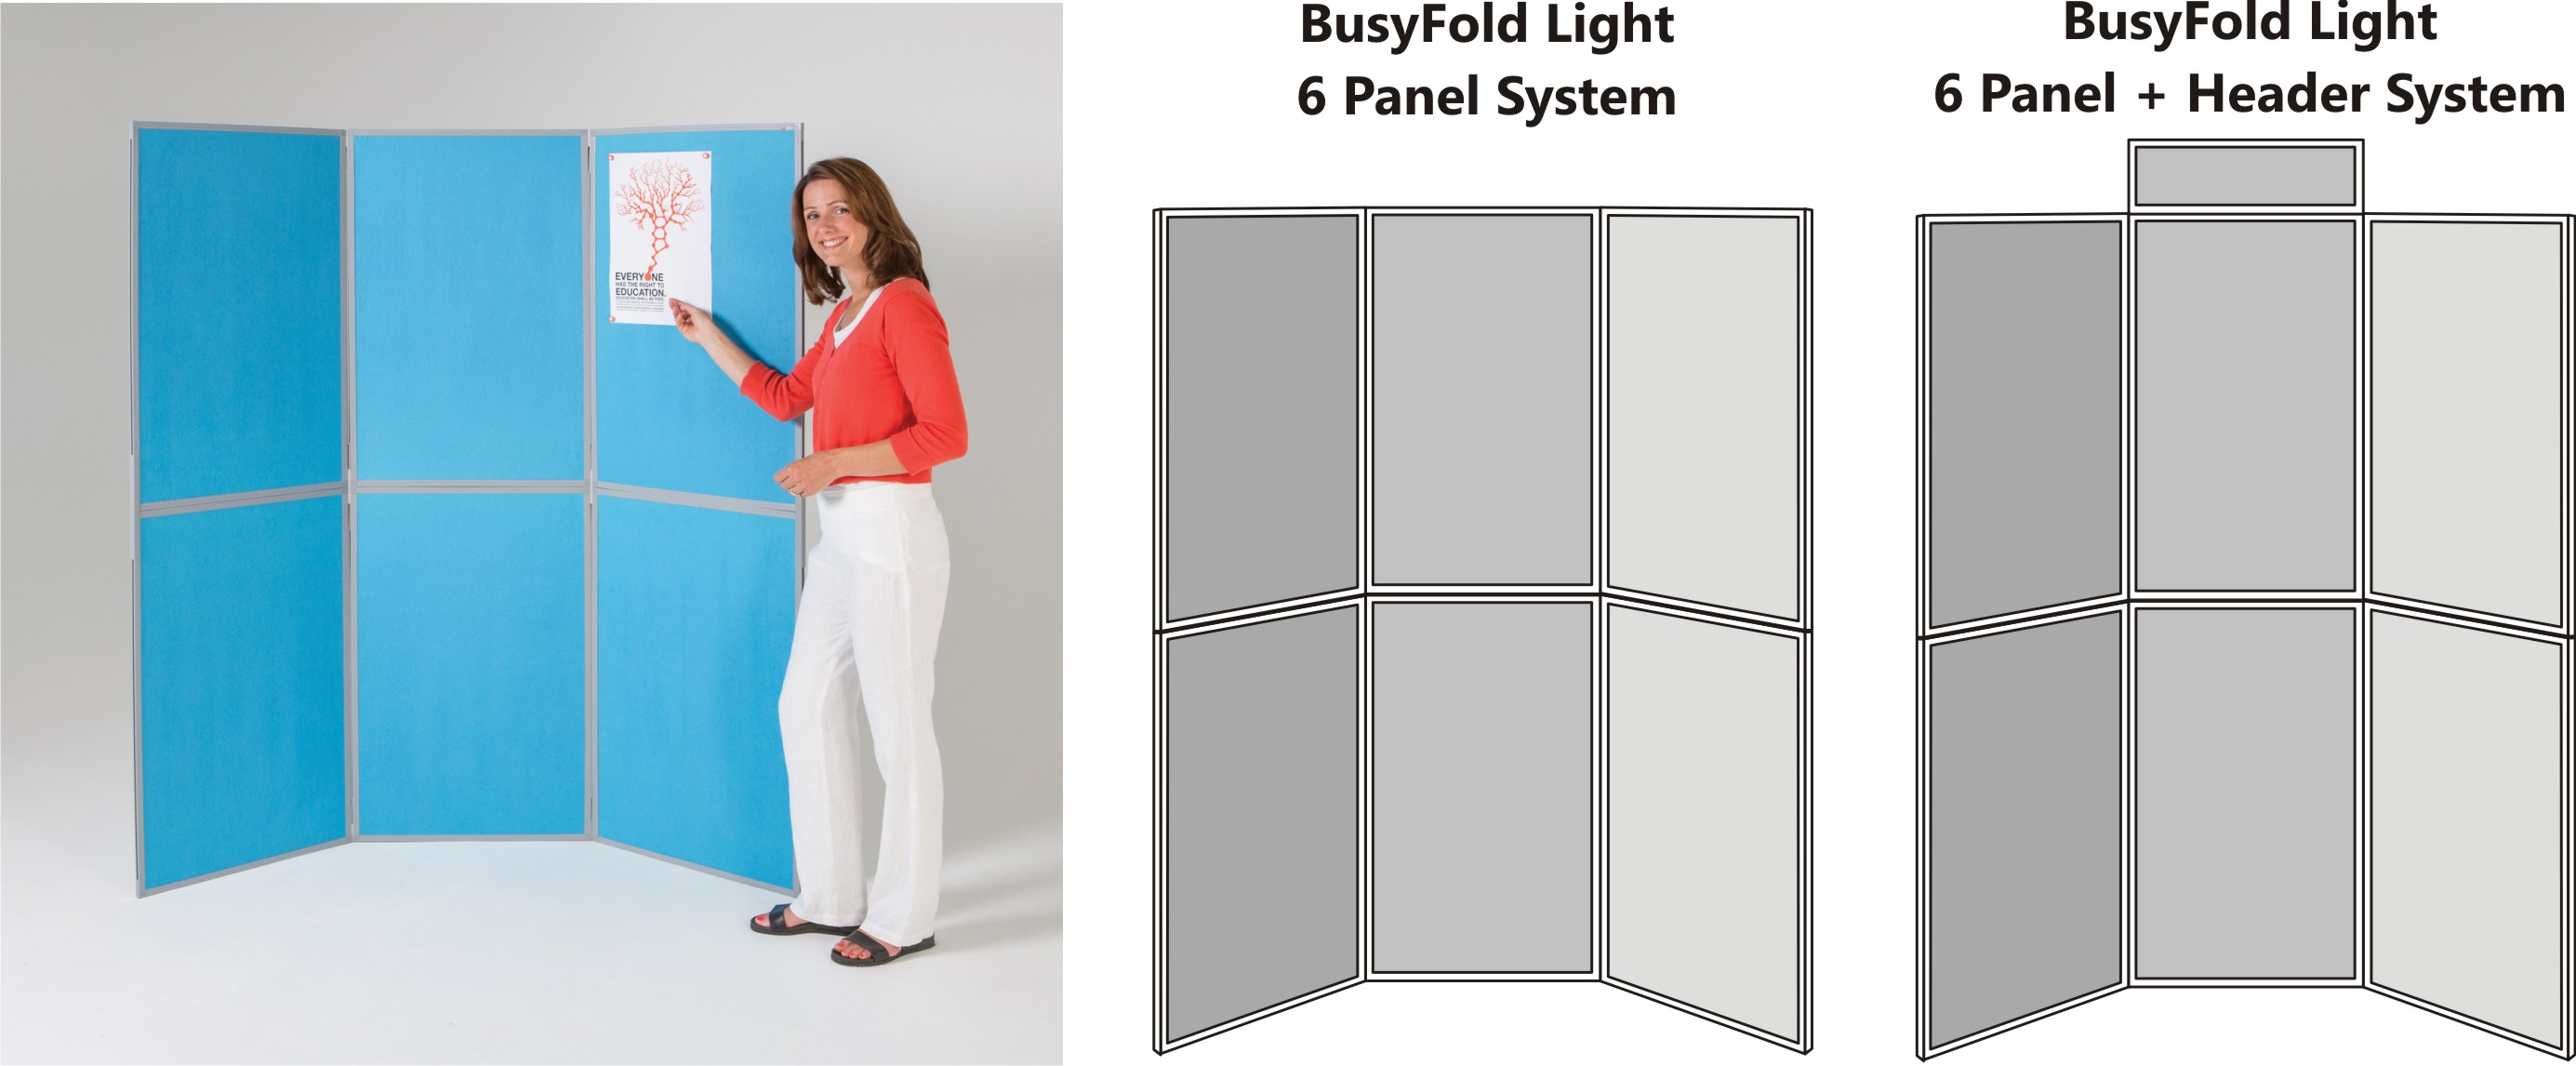 BusyFold Light 6 Panel Display System